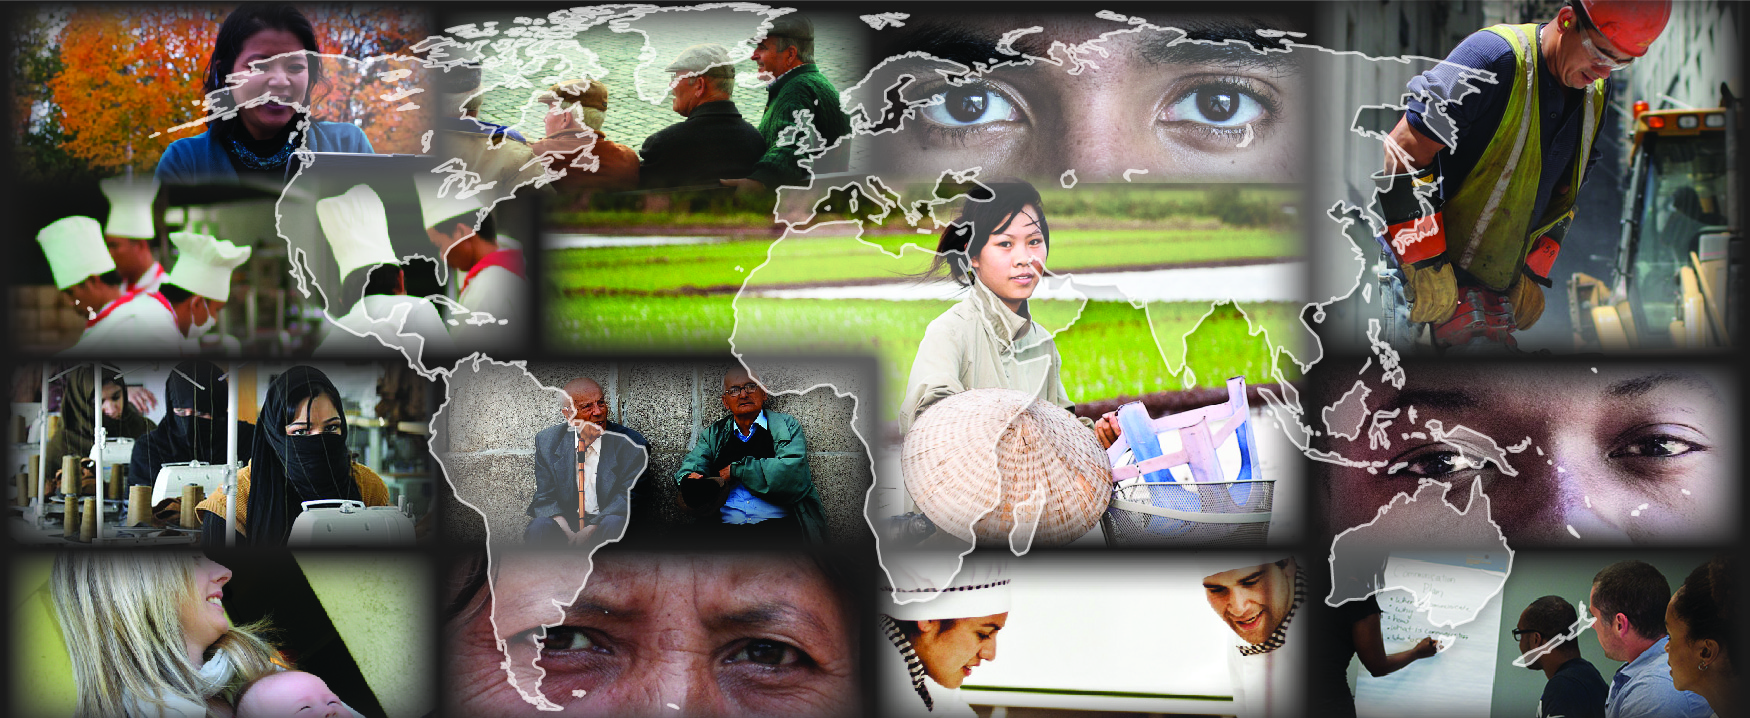 This is a collage of different photos showing a diverse range of people. There is a transparent outline of a map of the world over top of these photos. Photos around the outside, clockwise from the top left: A person is working outside on a laptop. A group of four people are sitting on a bench. This photo is a close up of a person with darker skin tone's eyes. A person wearing a construction hat and vest is using a jackhammer. This photo is a close up of a person with medium skin tone's eyes. People at a table are all listening to someone writing on a board during a meeting. Two people in chef outfits are working together. This photo is a close up of a person with lighter skin tone's eyes. A woman is holding a baby. A room is filled with sewing machines in a row with people working at each machine. A group of five people in chef outfits are working together. The center right photo shows a person with a bicycle. The center left photo shows two people sitting against a concrete wall.